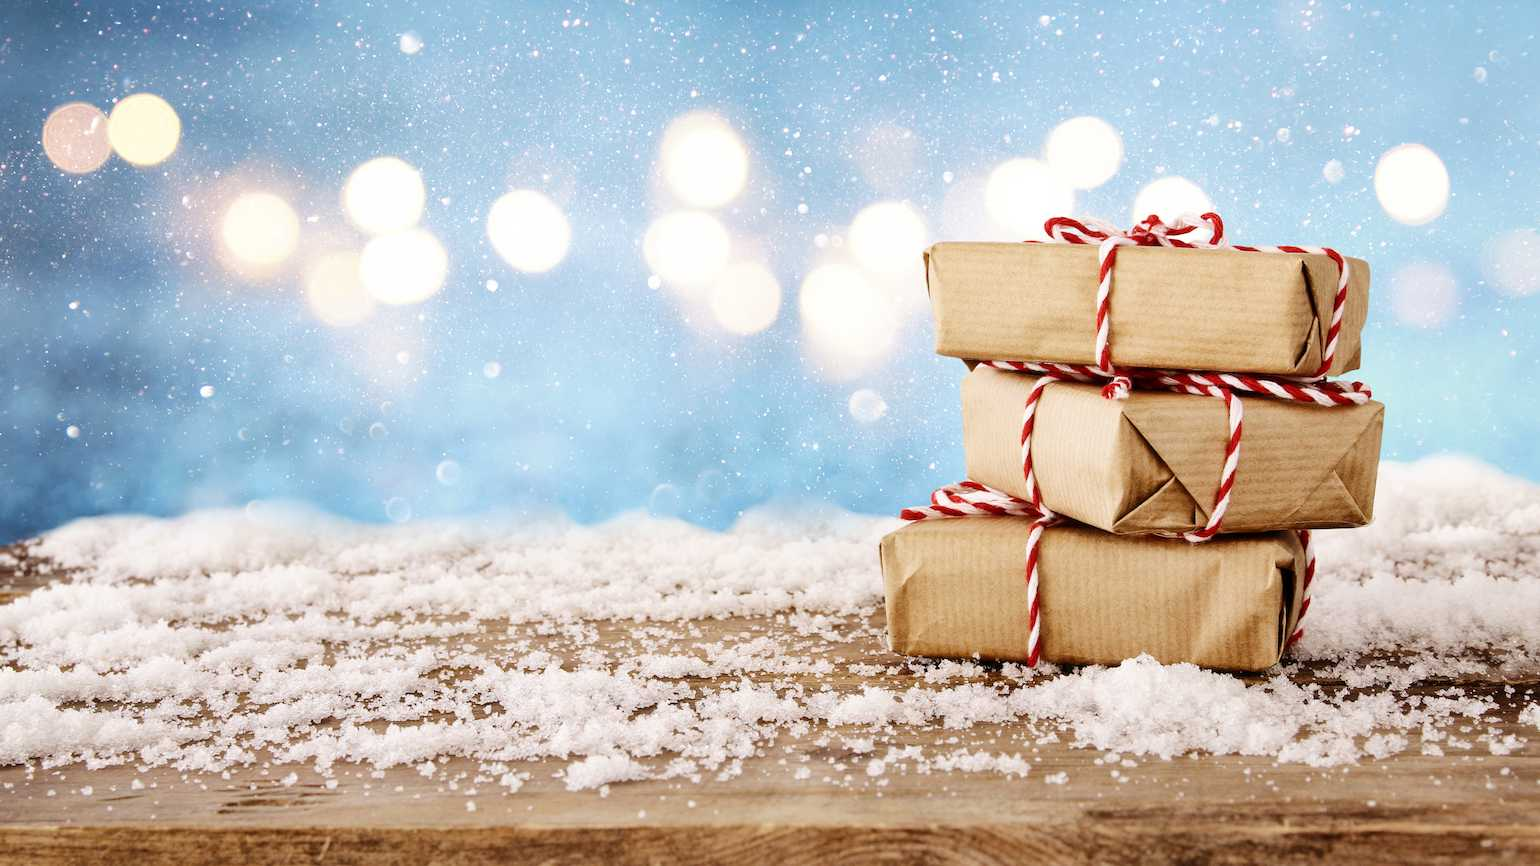 Positive gift giving